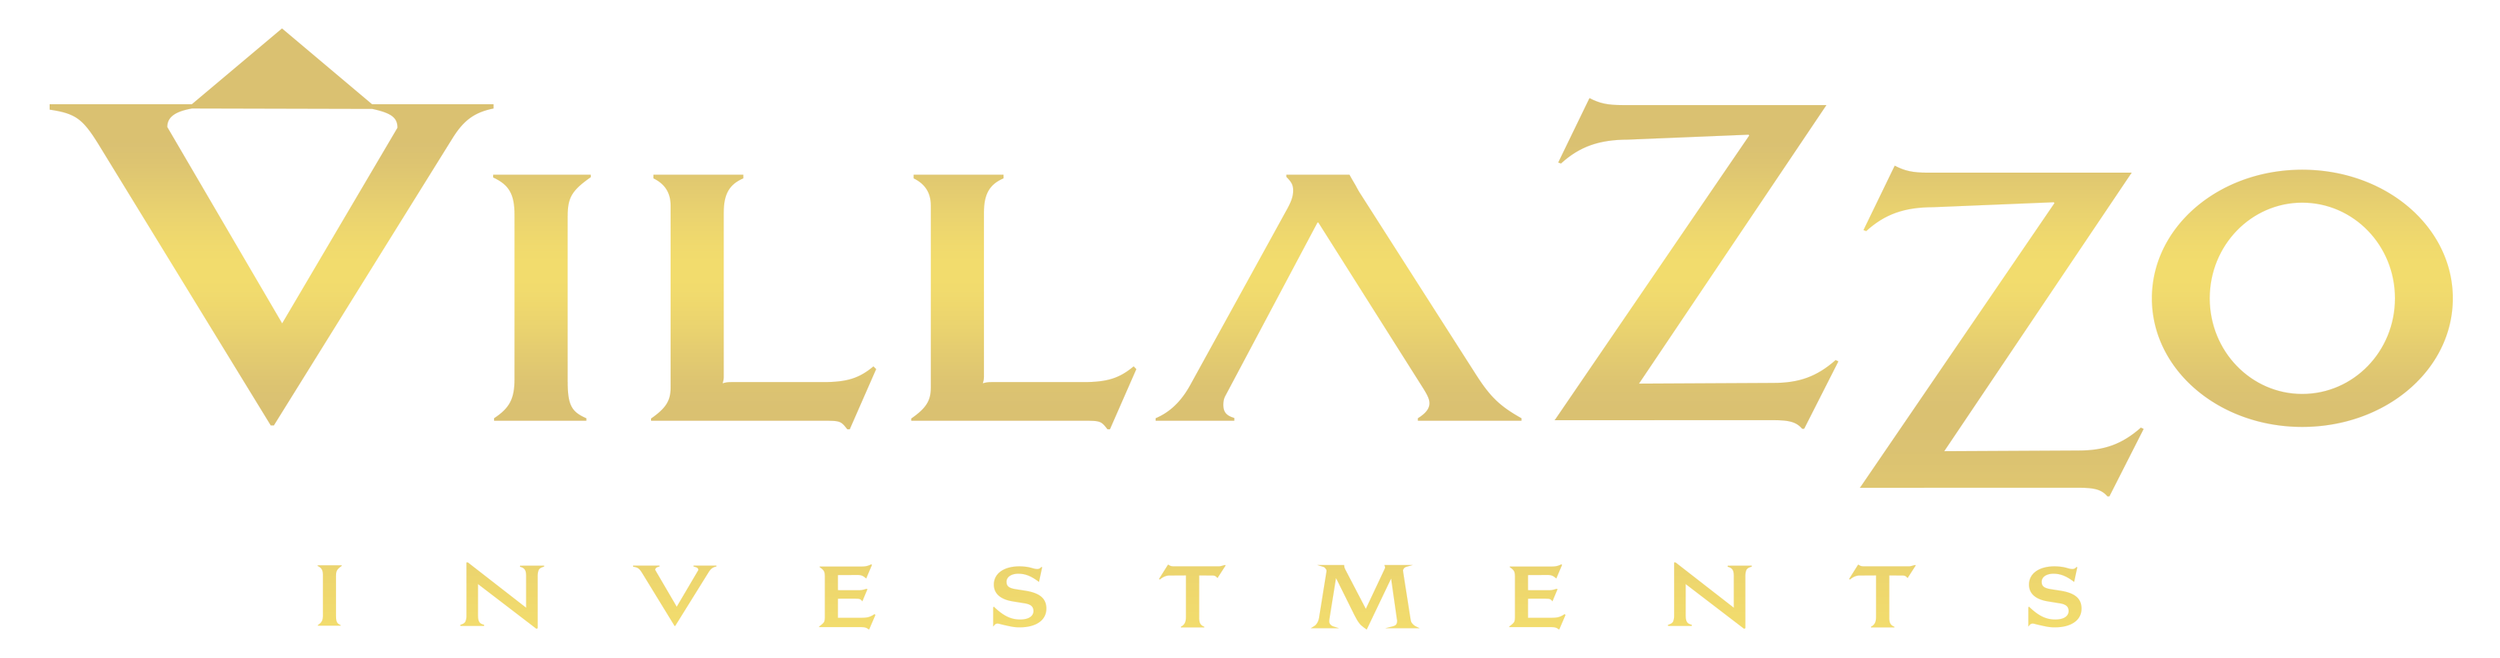 villazzo-investments-logo.png